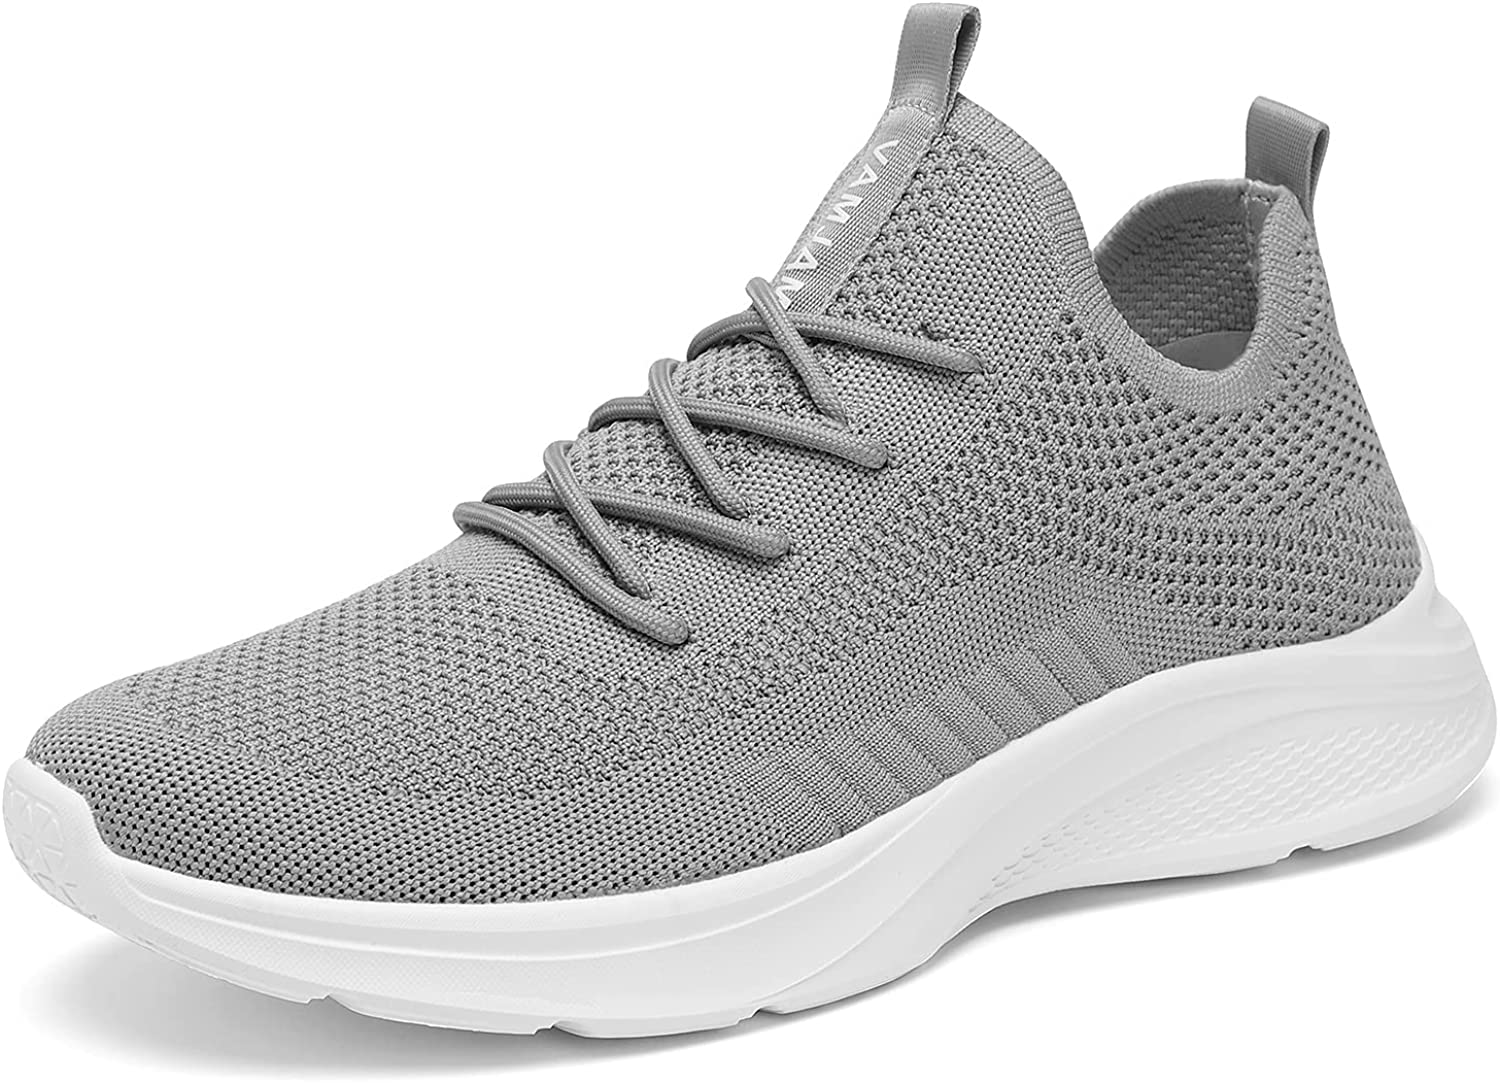 VAMJAM Men's Running Shoes Fashion Sneakers - Lightweight Breathable Flying Knitting Lace Up Mesh Walking Shoes Workout Casual Sports Shoes